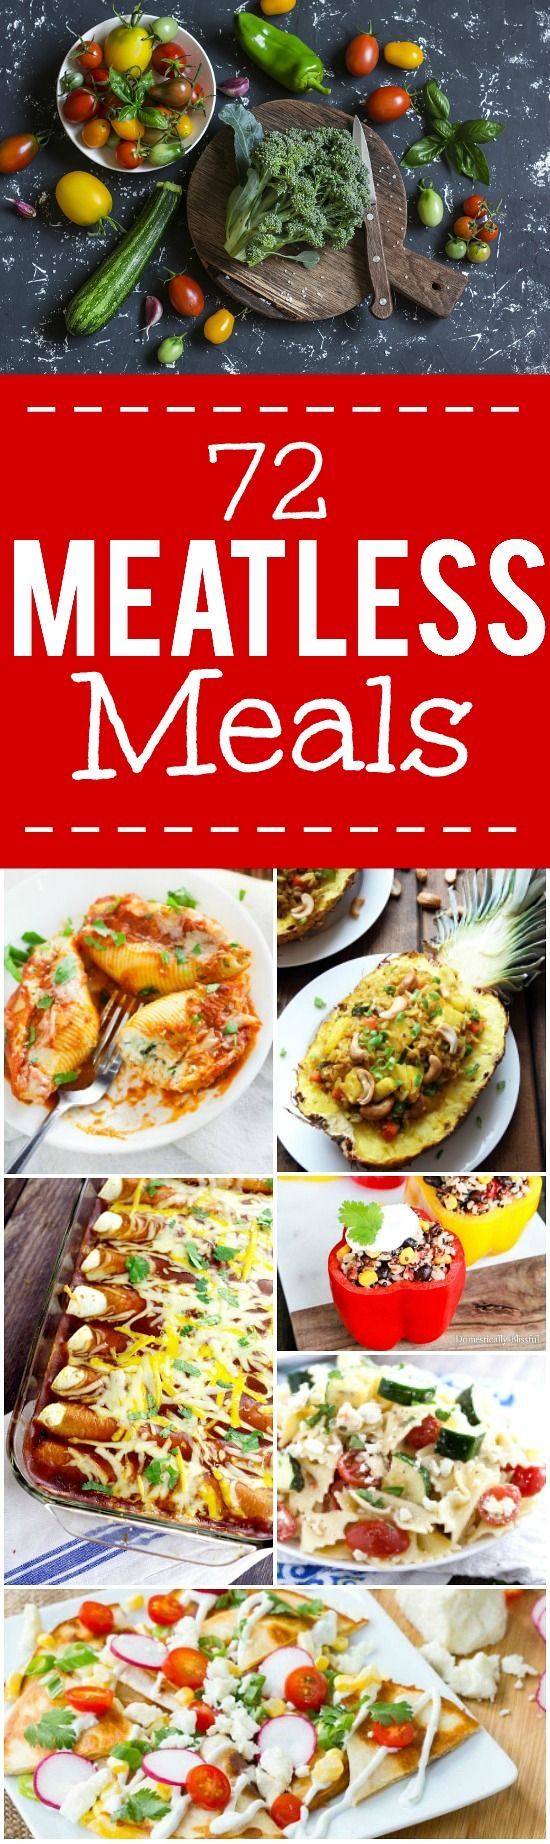 72 Meatless Recipe Ideas -72 of the best Meatless Monday recipesthat are family friendly, simple and easy vegetarian recipes. Making just one vegetarian dinner every week can help save ongrocery costs too!